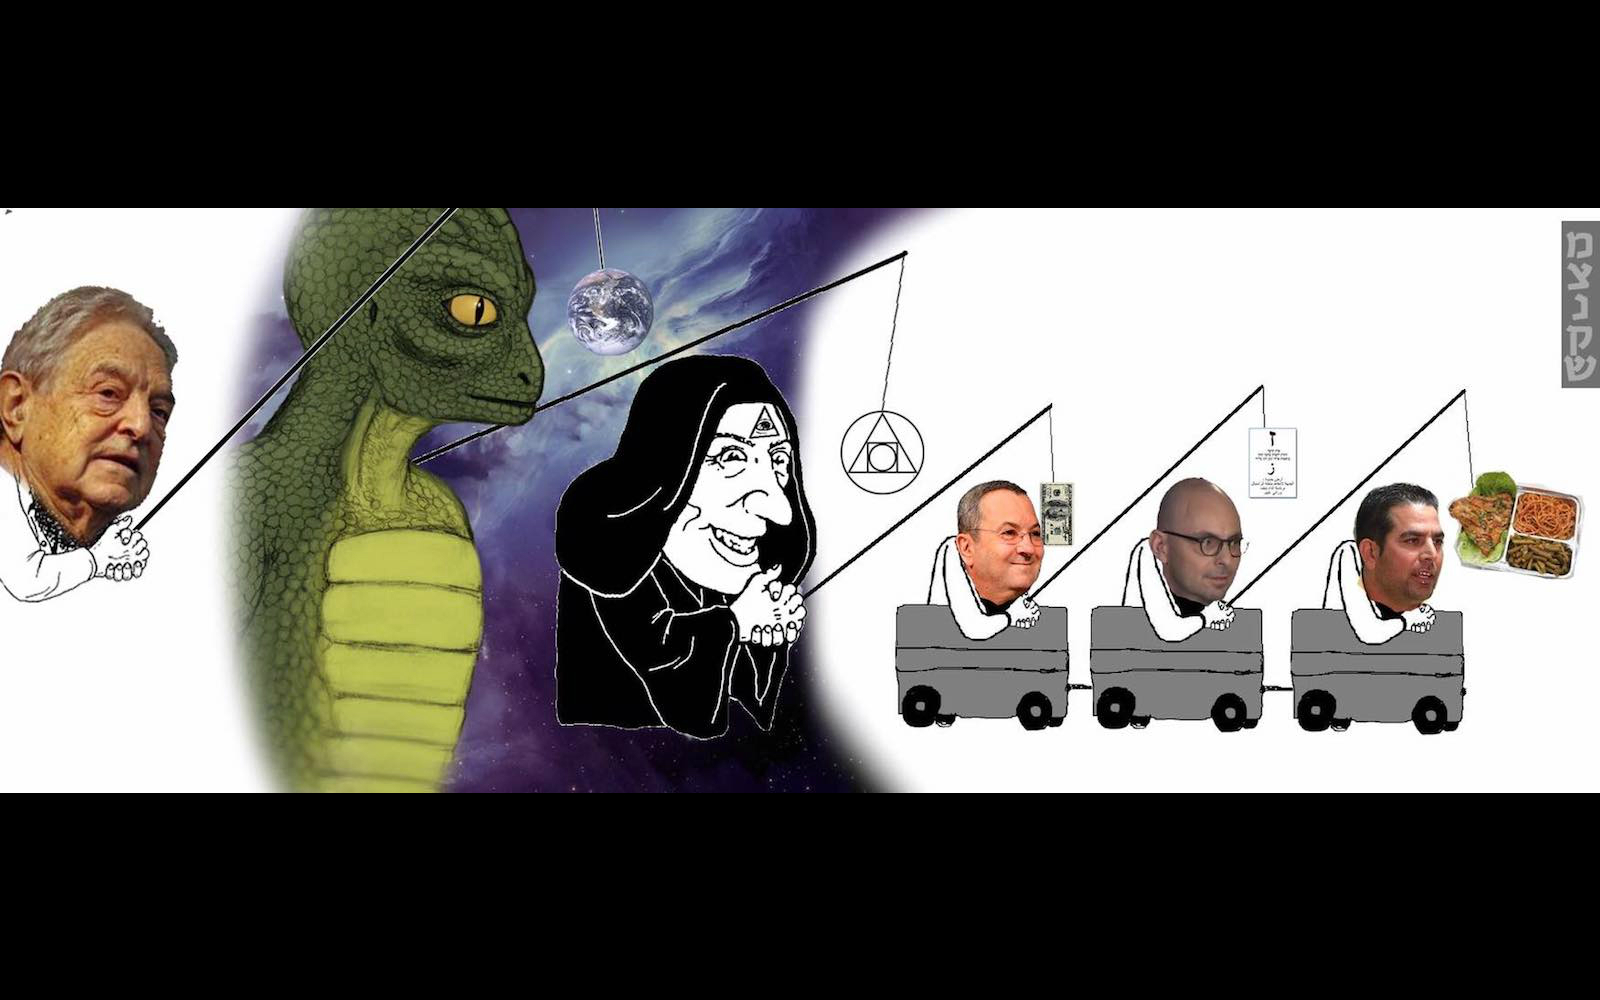 Alien reptile' and cloaked figure in Yair Netanyahu's meme